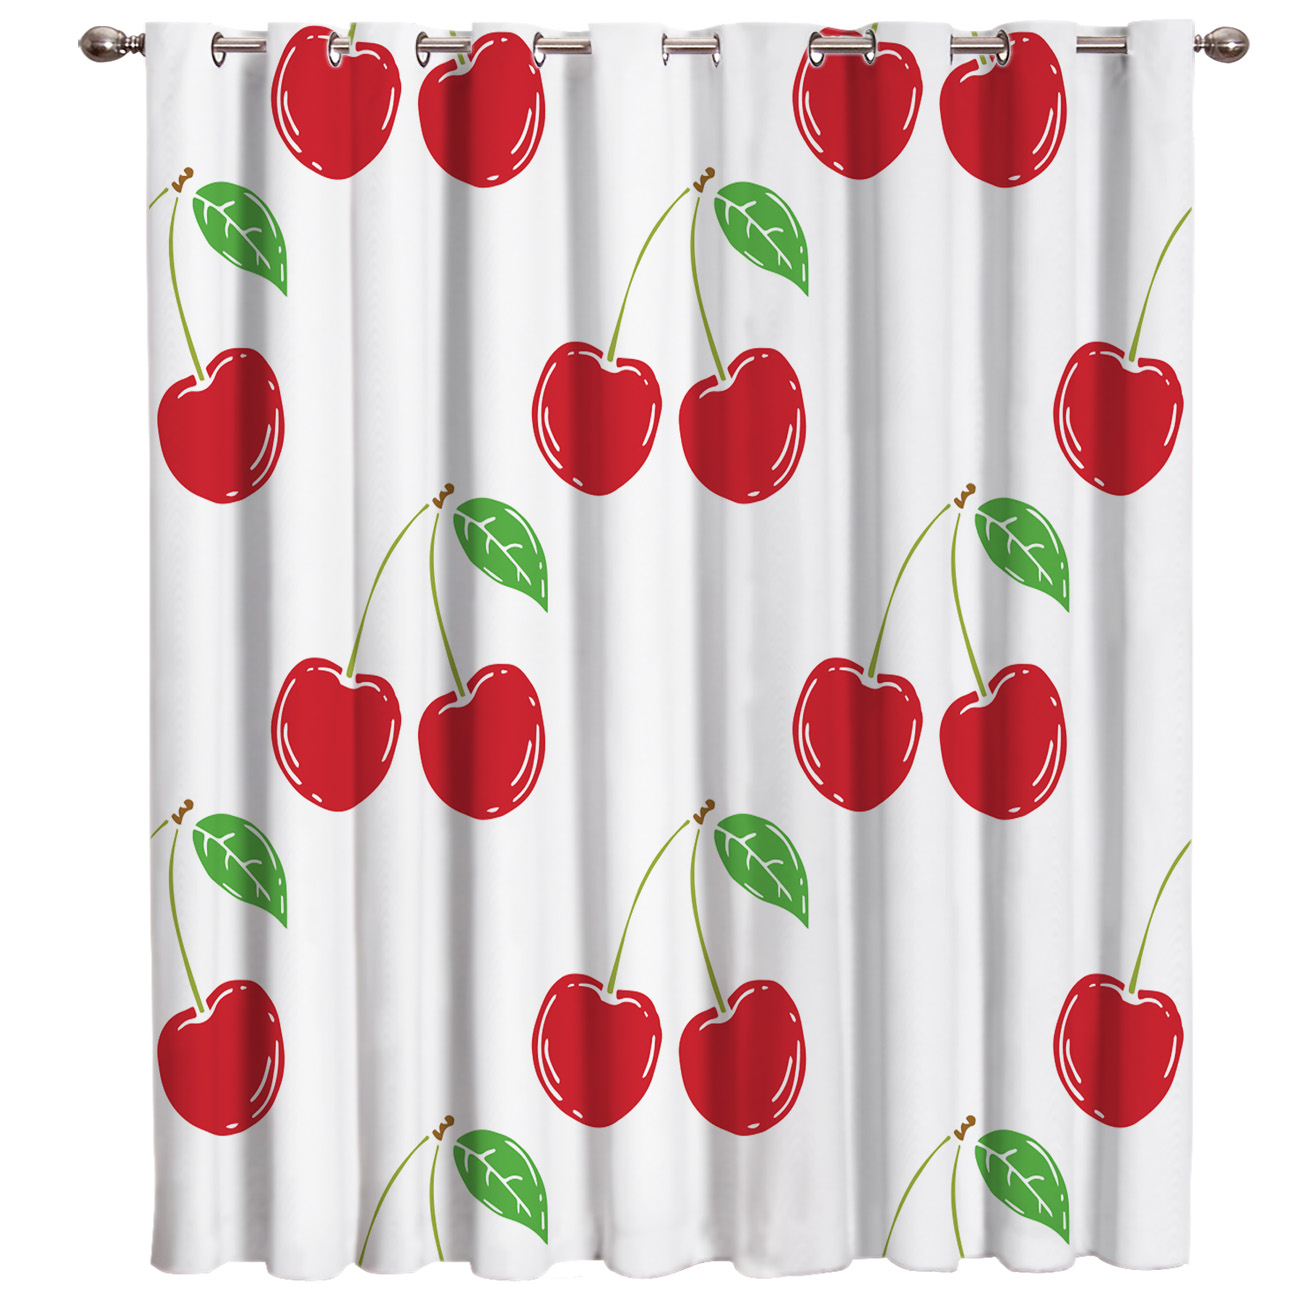 Cherry Room Curtains Large Window Bedroom Kitchen Fabric Indoor Decor Swag Window Treatment Ideas Window Curtain Panels Window